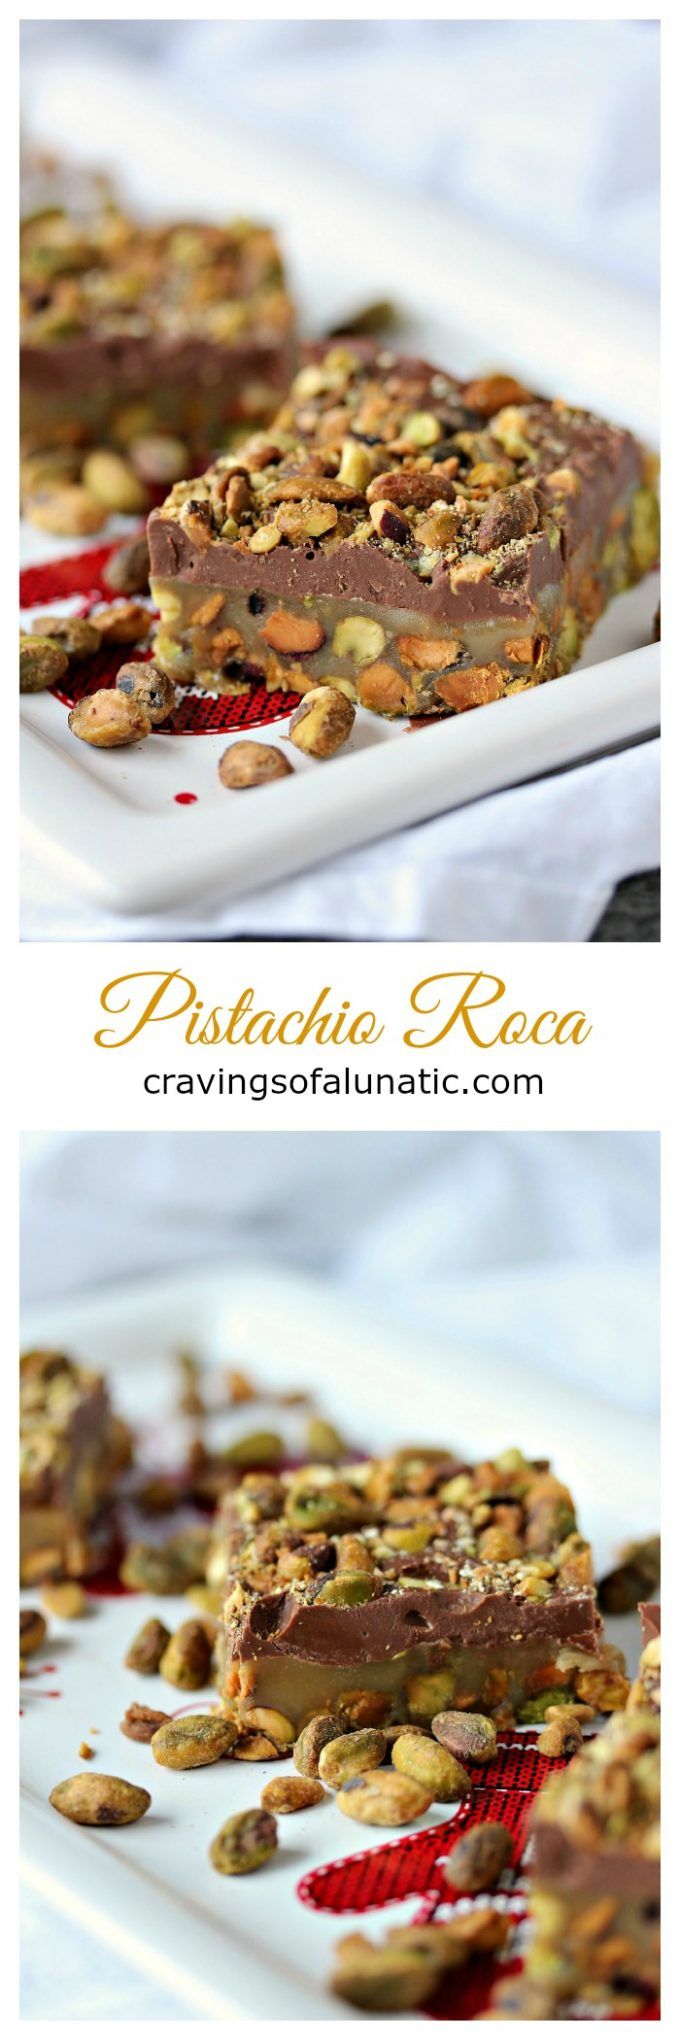 Pistachio Roca from cravingsofalunatic.com- For all my fellow Pistachio Lovers out there, this one is for YOU! It's Pistachio Roca, layers of pistachios, caramel, chocolate, and more pistachios. It's little bites of candy heaven!